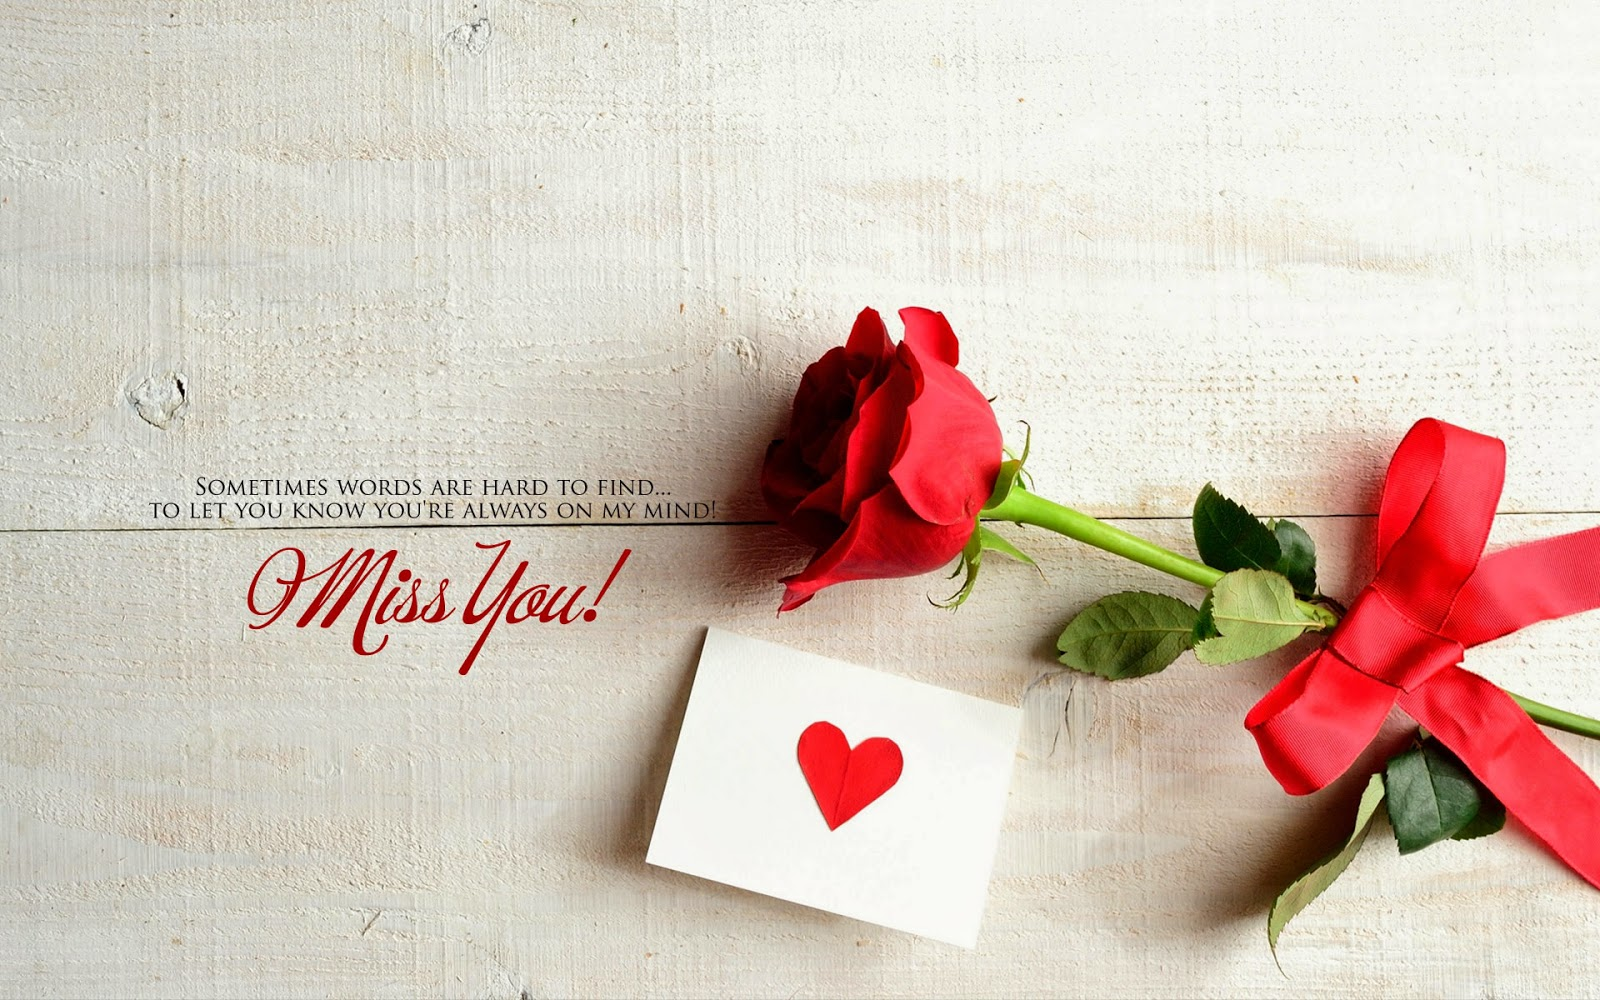 miss you hd quotes wallpapers telugu